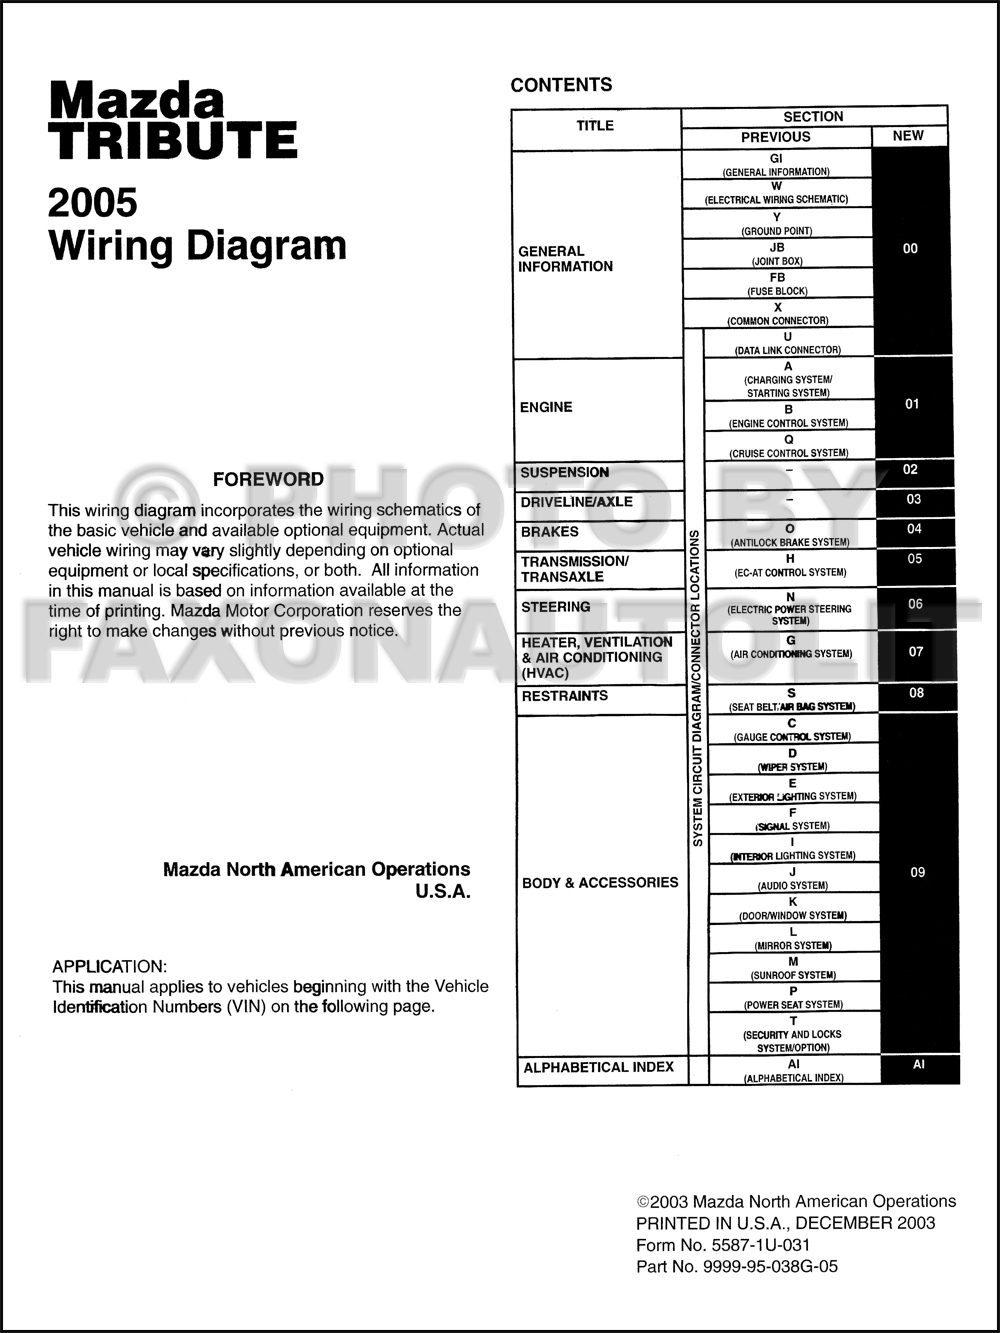 2005 Mazda Tribute Wiring Diagram Schematics Diagrams